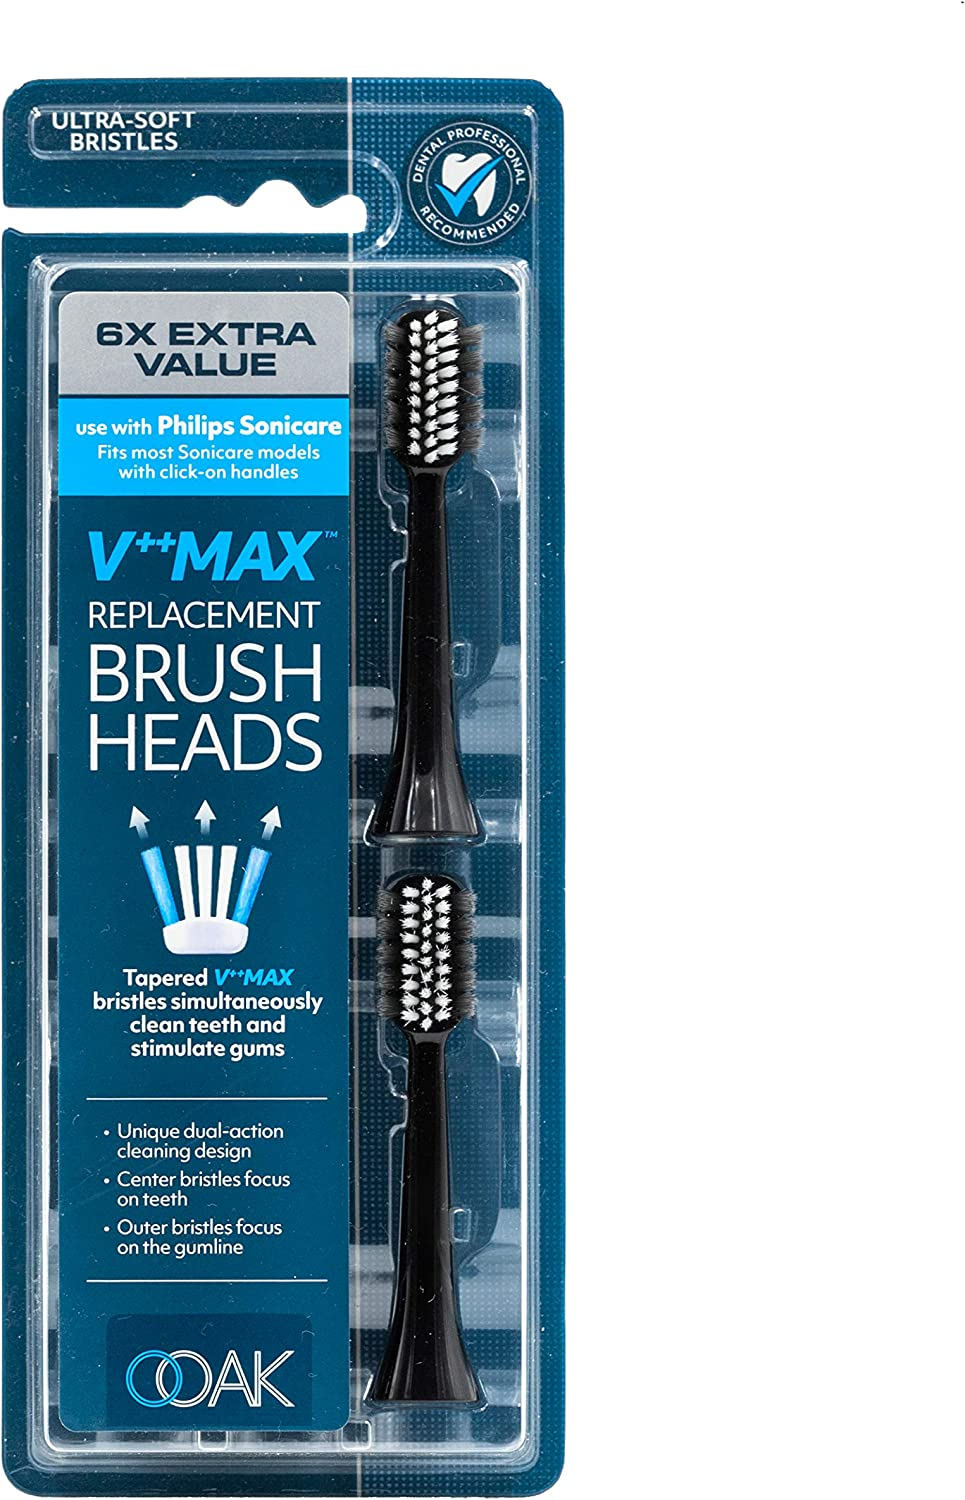 Ooak V++Max Replacement Brush Head Philips 6 New Fashion products world's highest quality popular Sonicare with Use